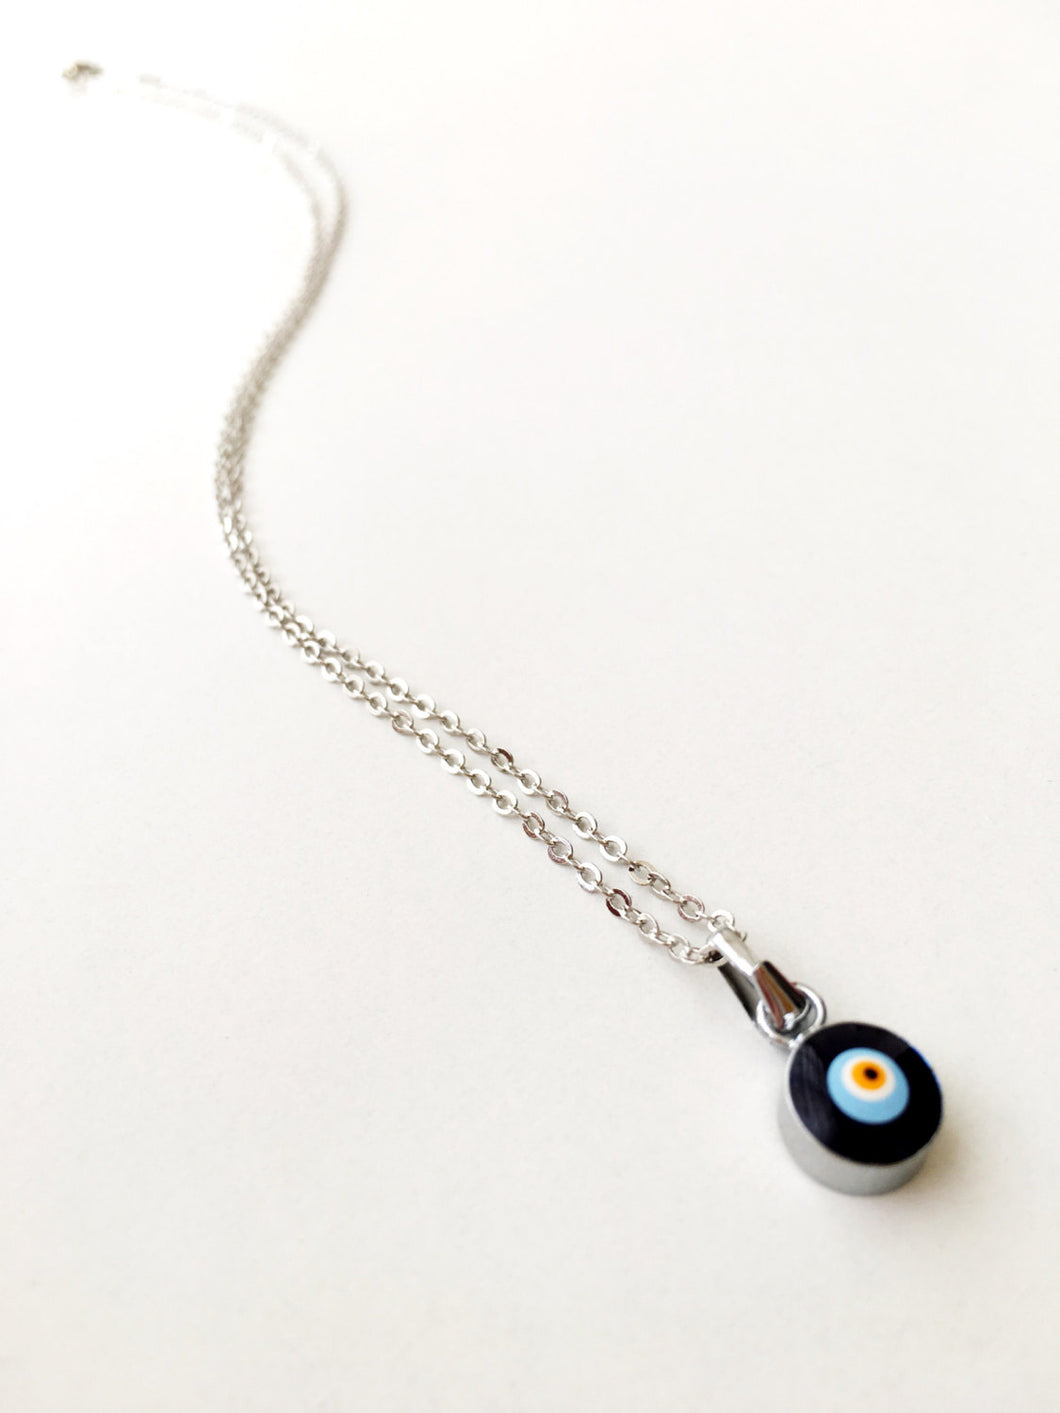 Evil eye choker necklace, silver evil eye necklace, blue evil eye necklace - Evileyefavor